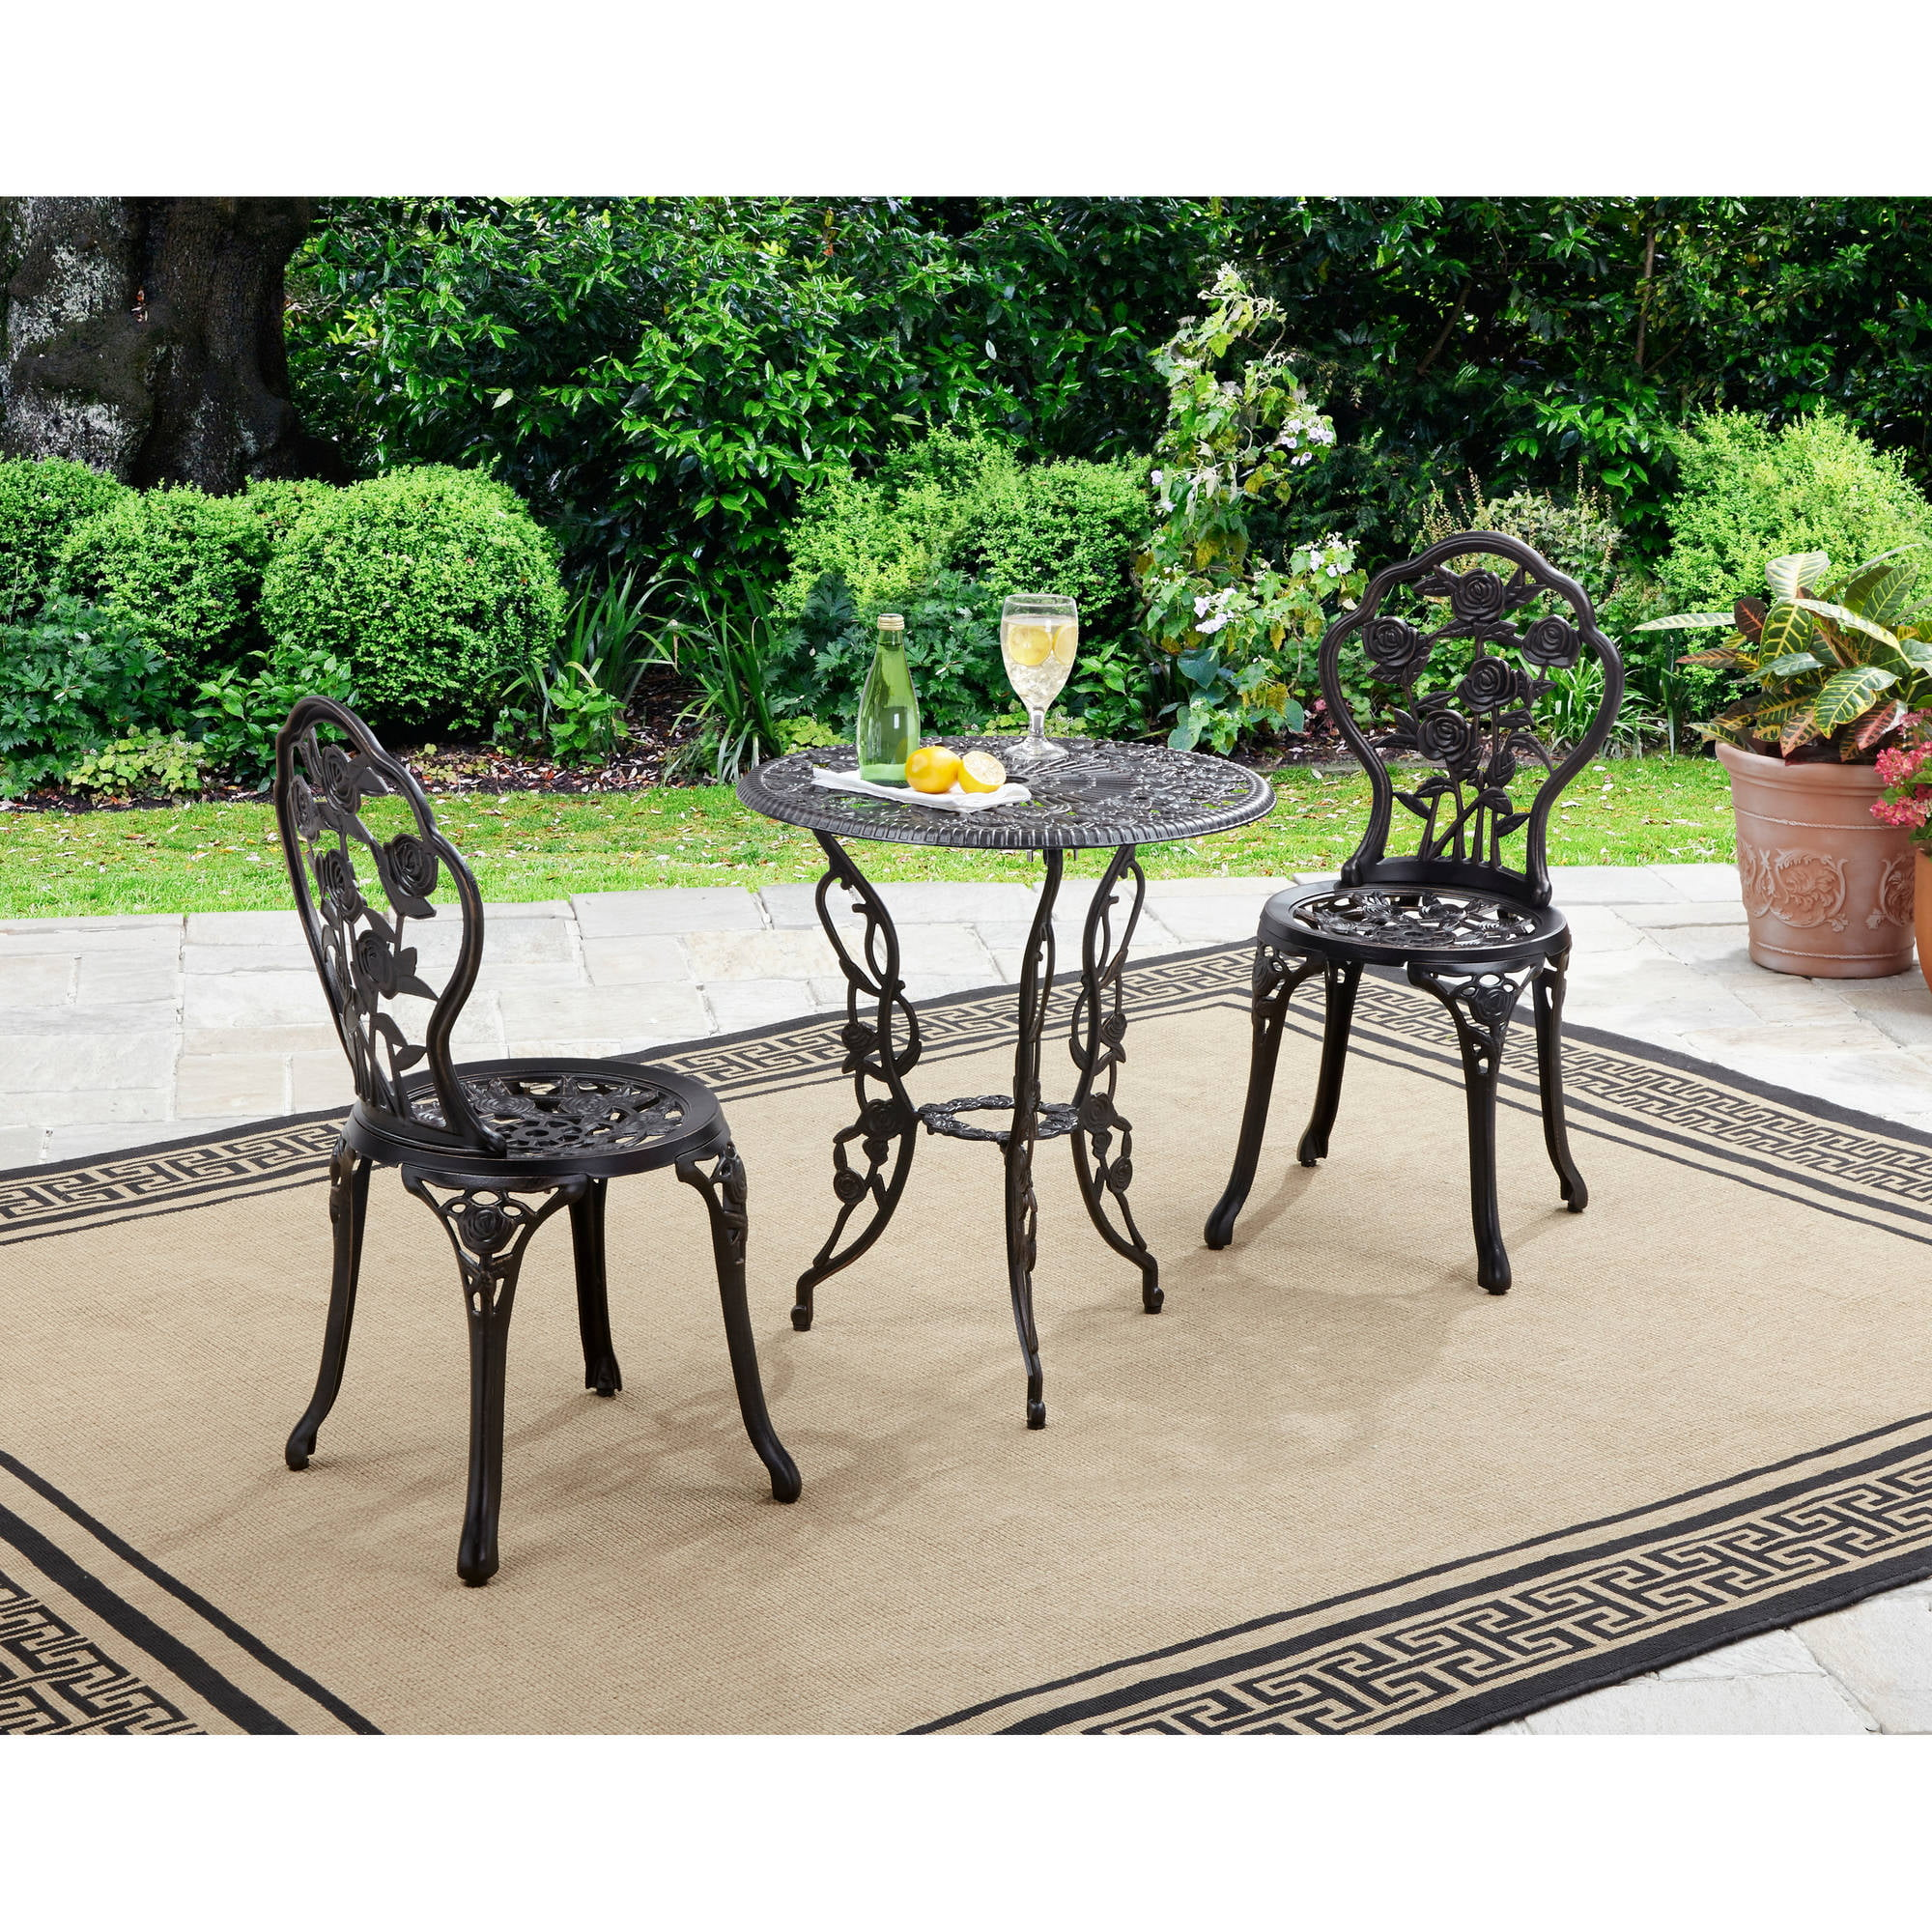 Round Table Patio Furniture Sets Better Homes And Gardens Rose 3 Piece Outdoor Bistro Set